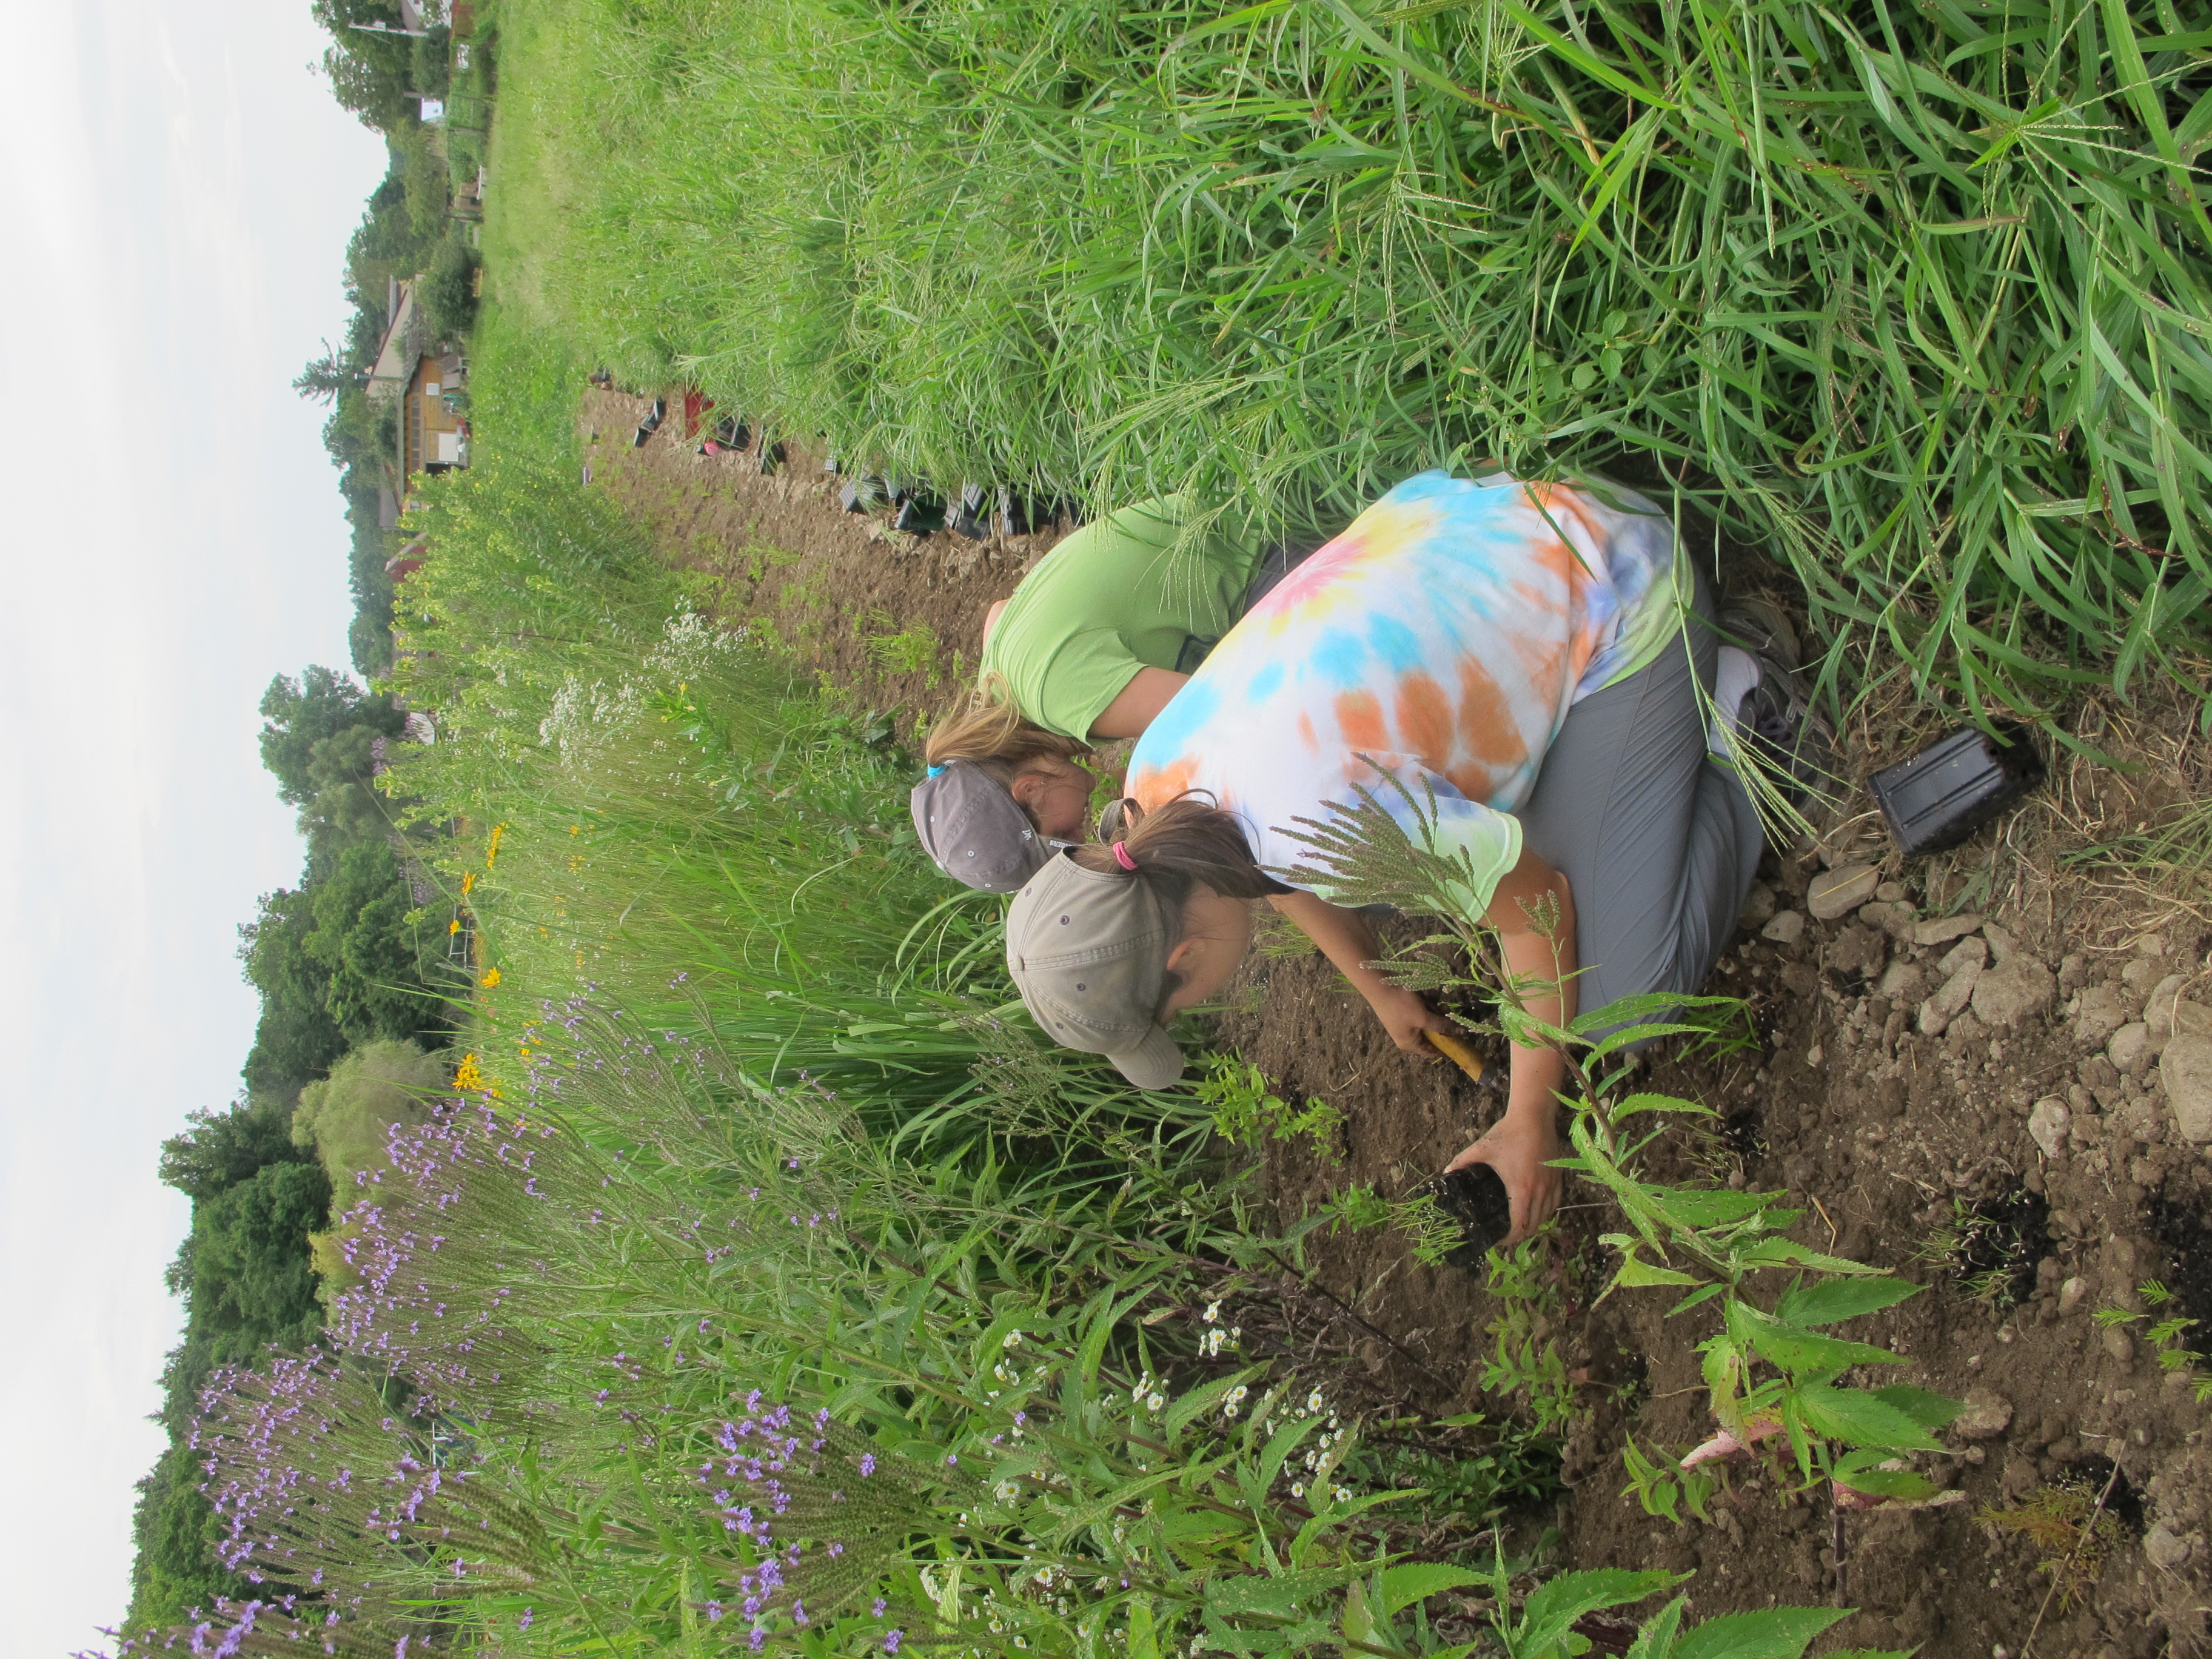 Interns help to plant flowers and grasses